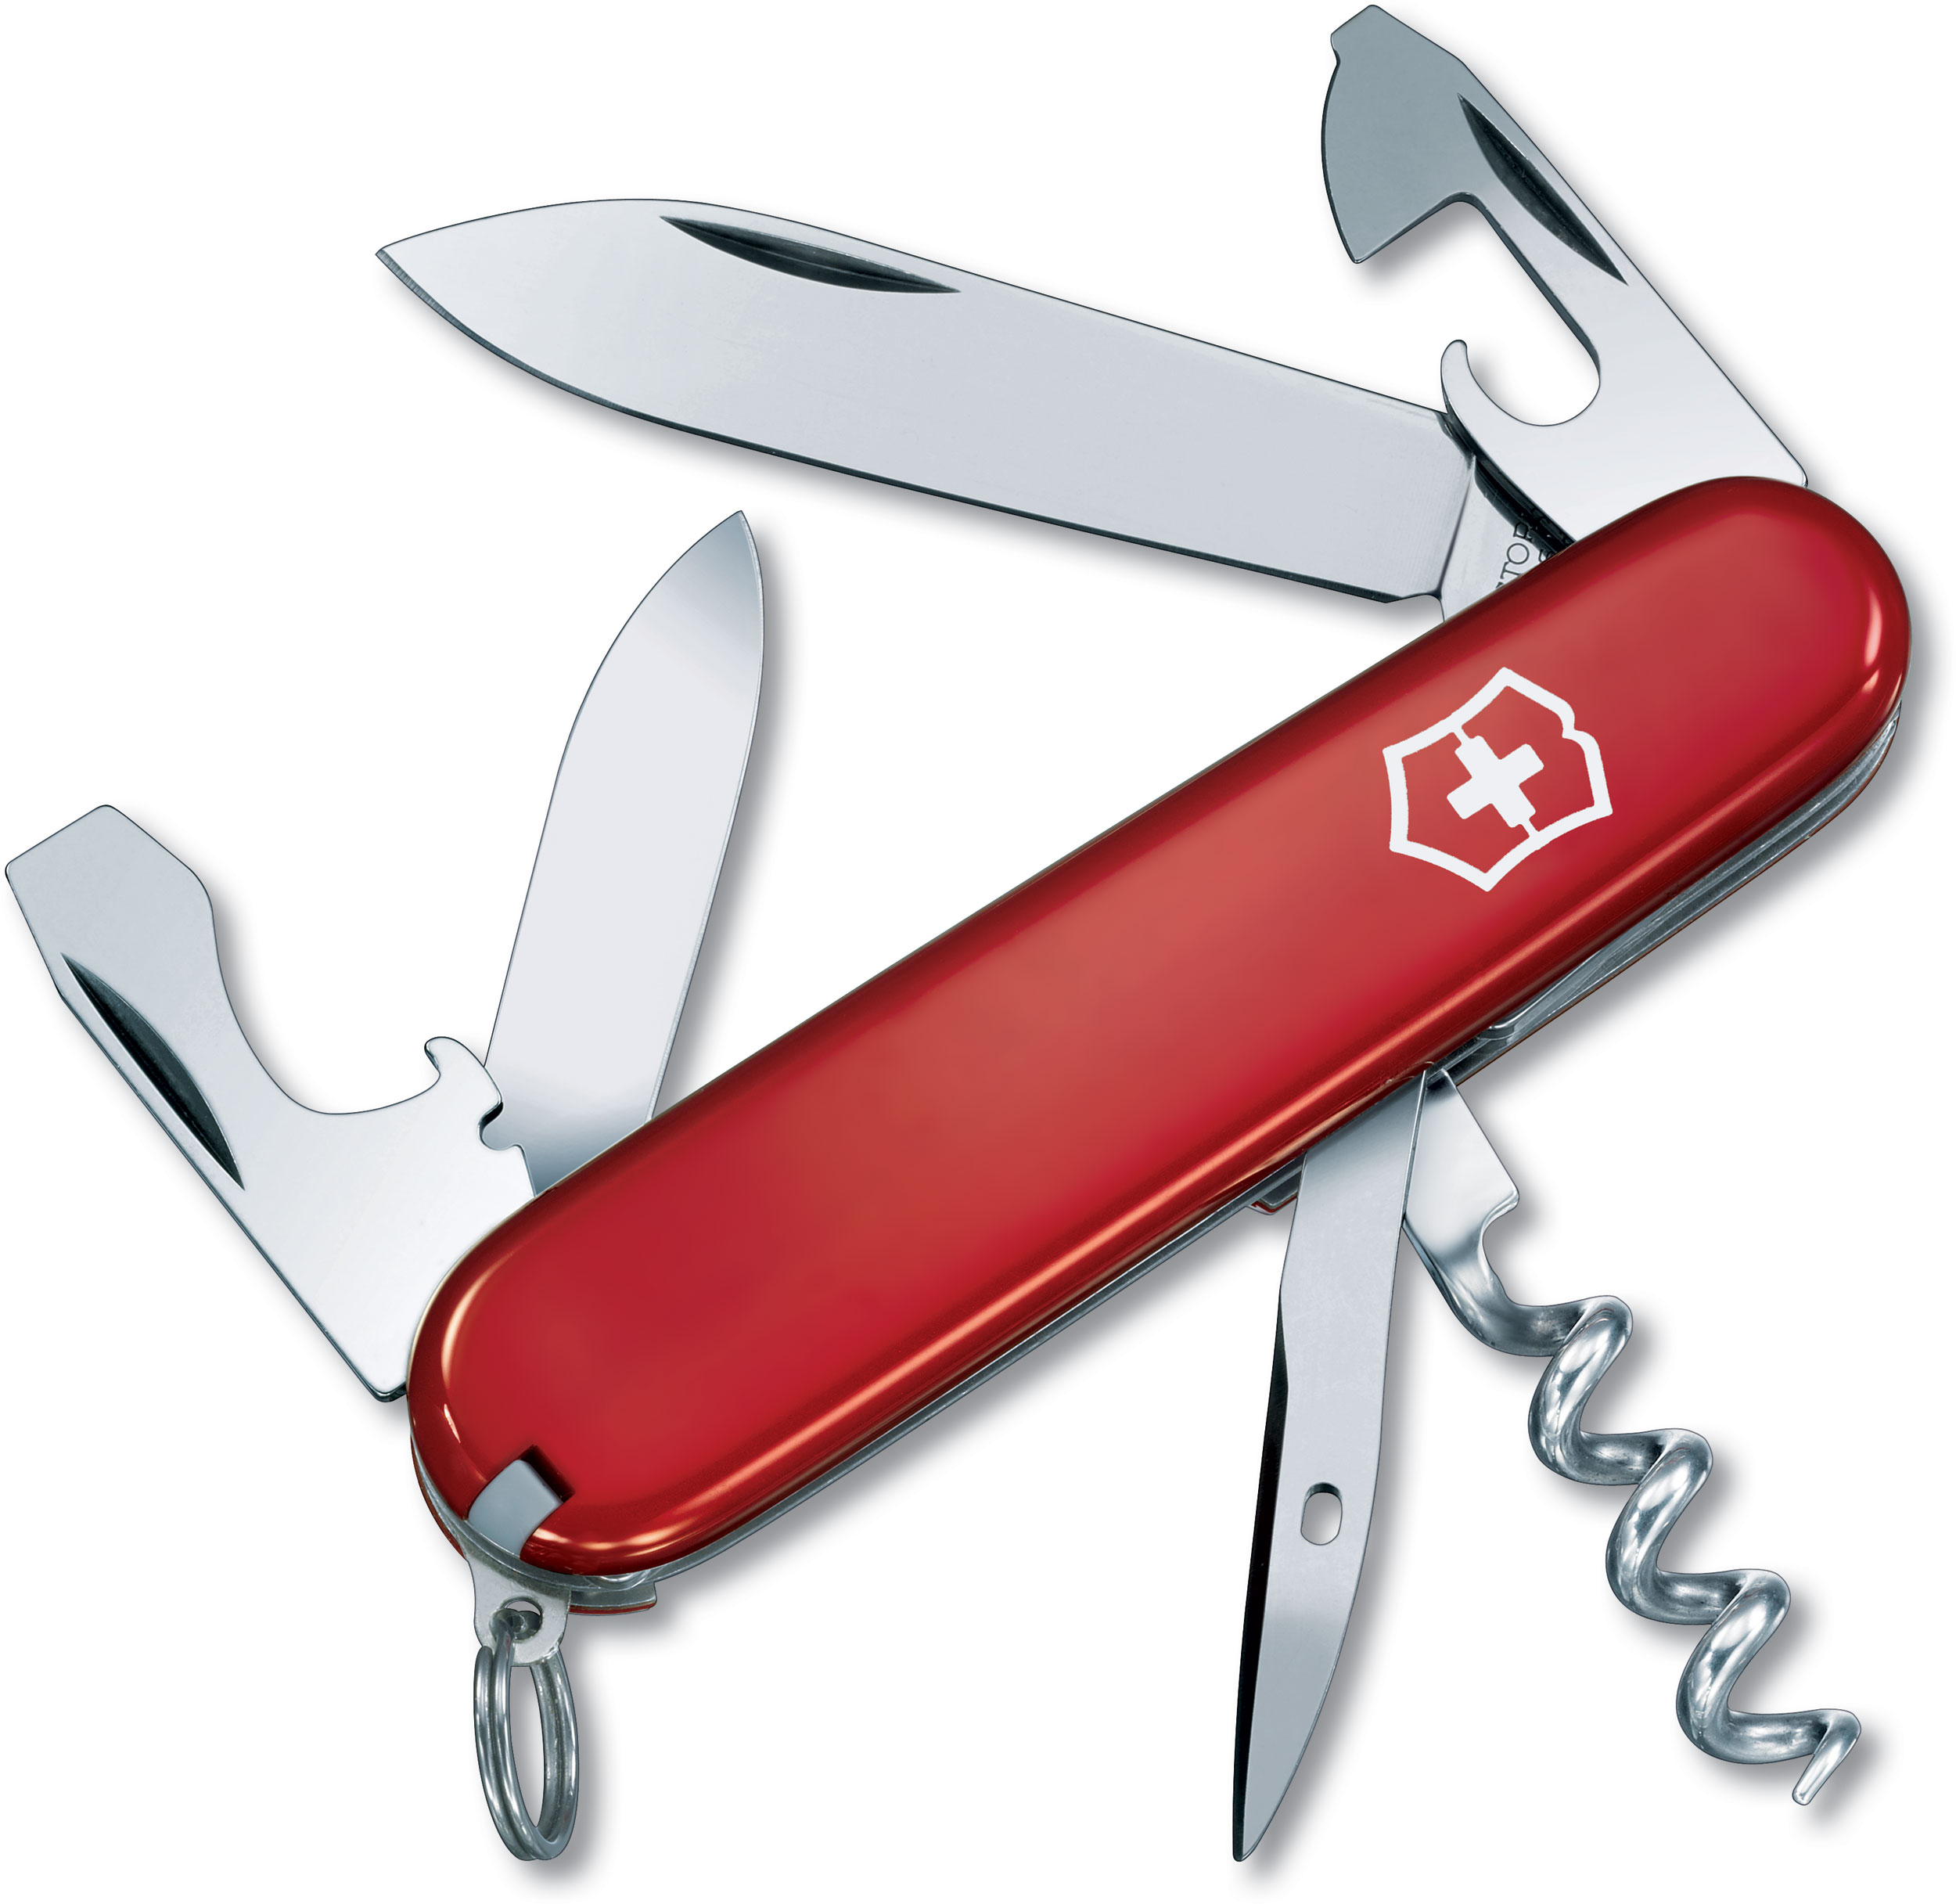 Victorinox Swiss Army Tourist Multi-Tool, Red, 3.31 inch Closed